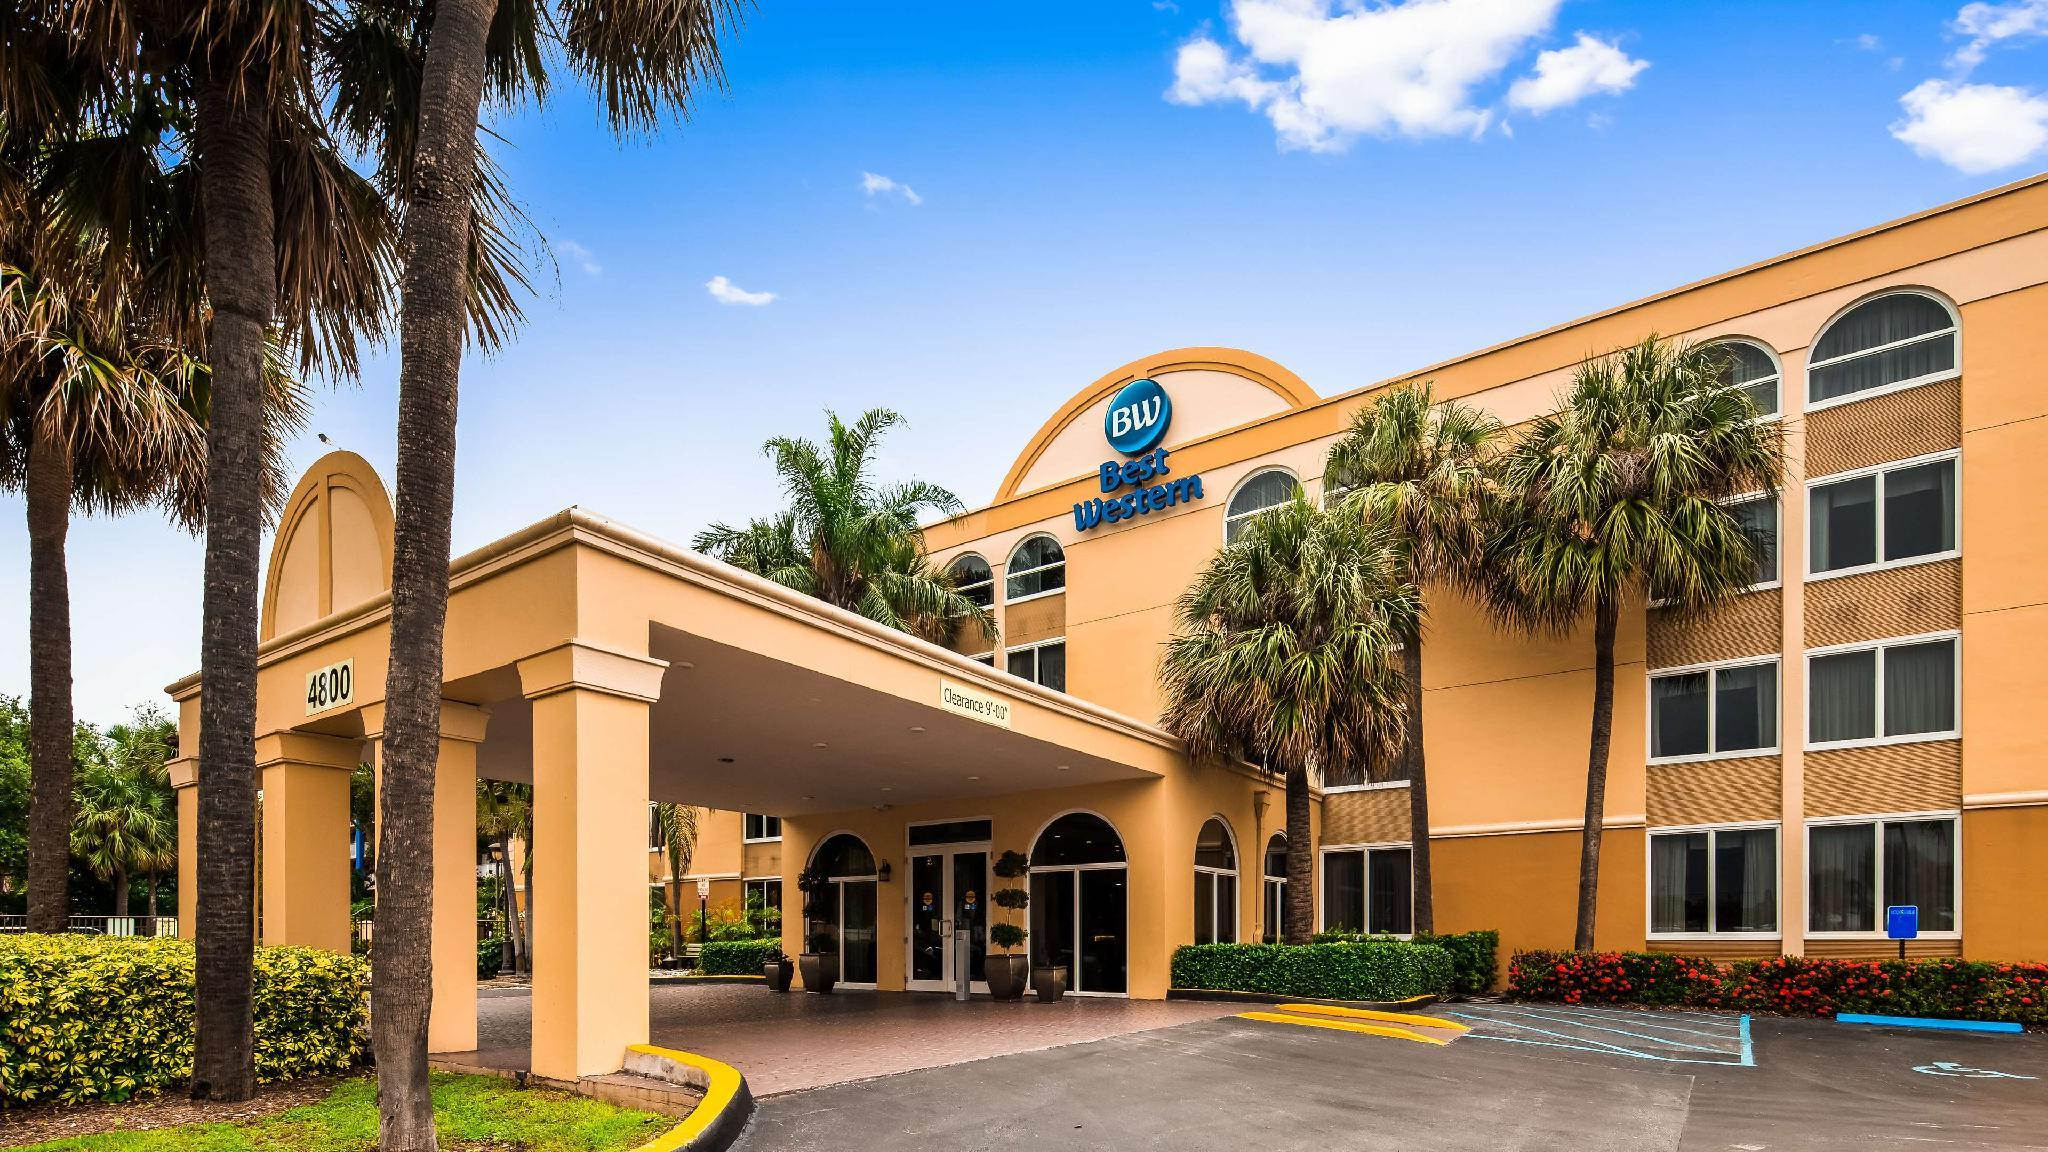 About Best Western Ft. Lauderdale I95 Inn